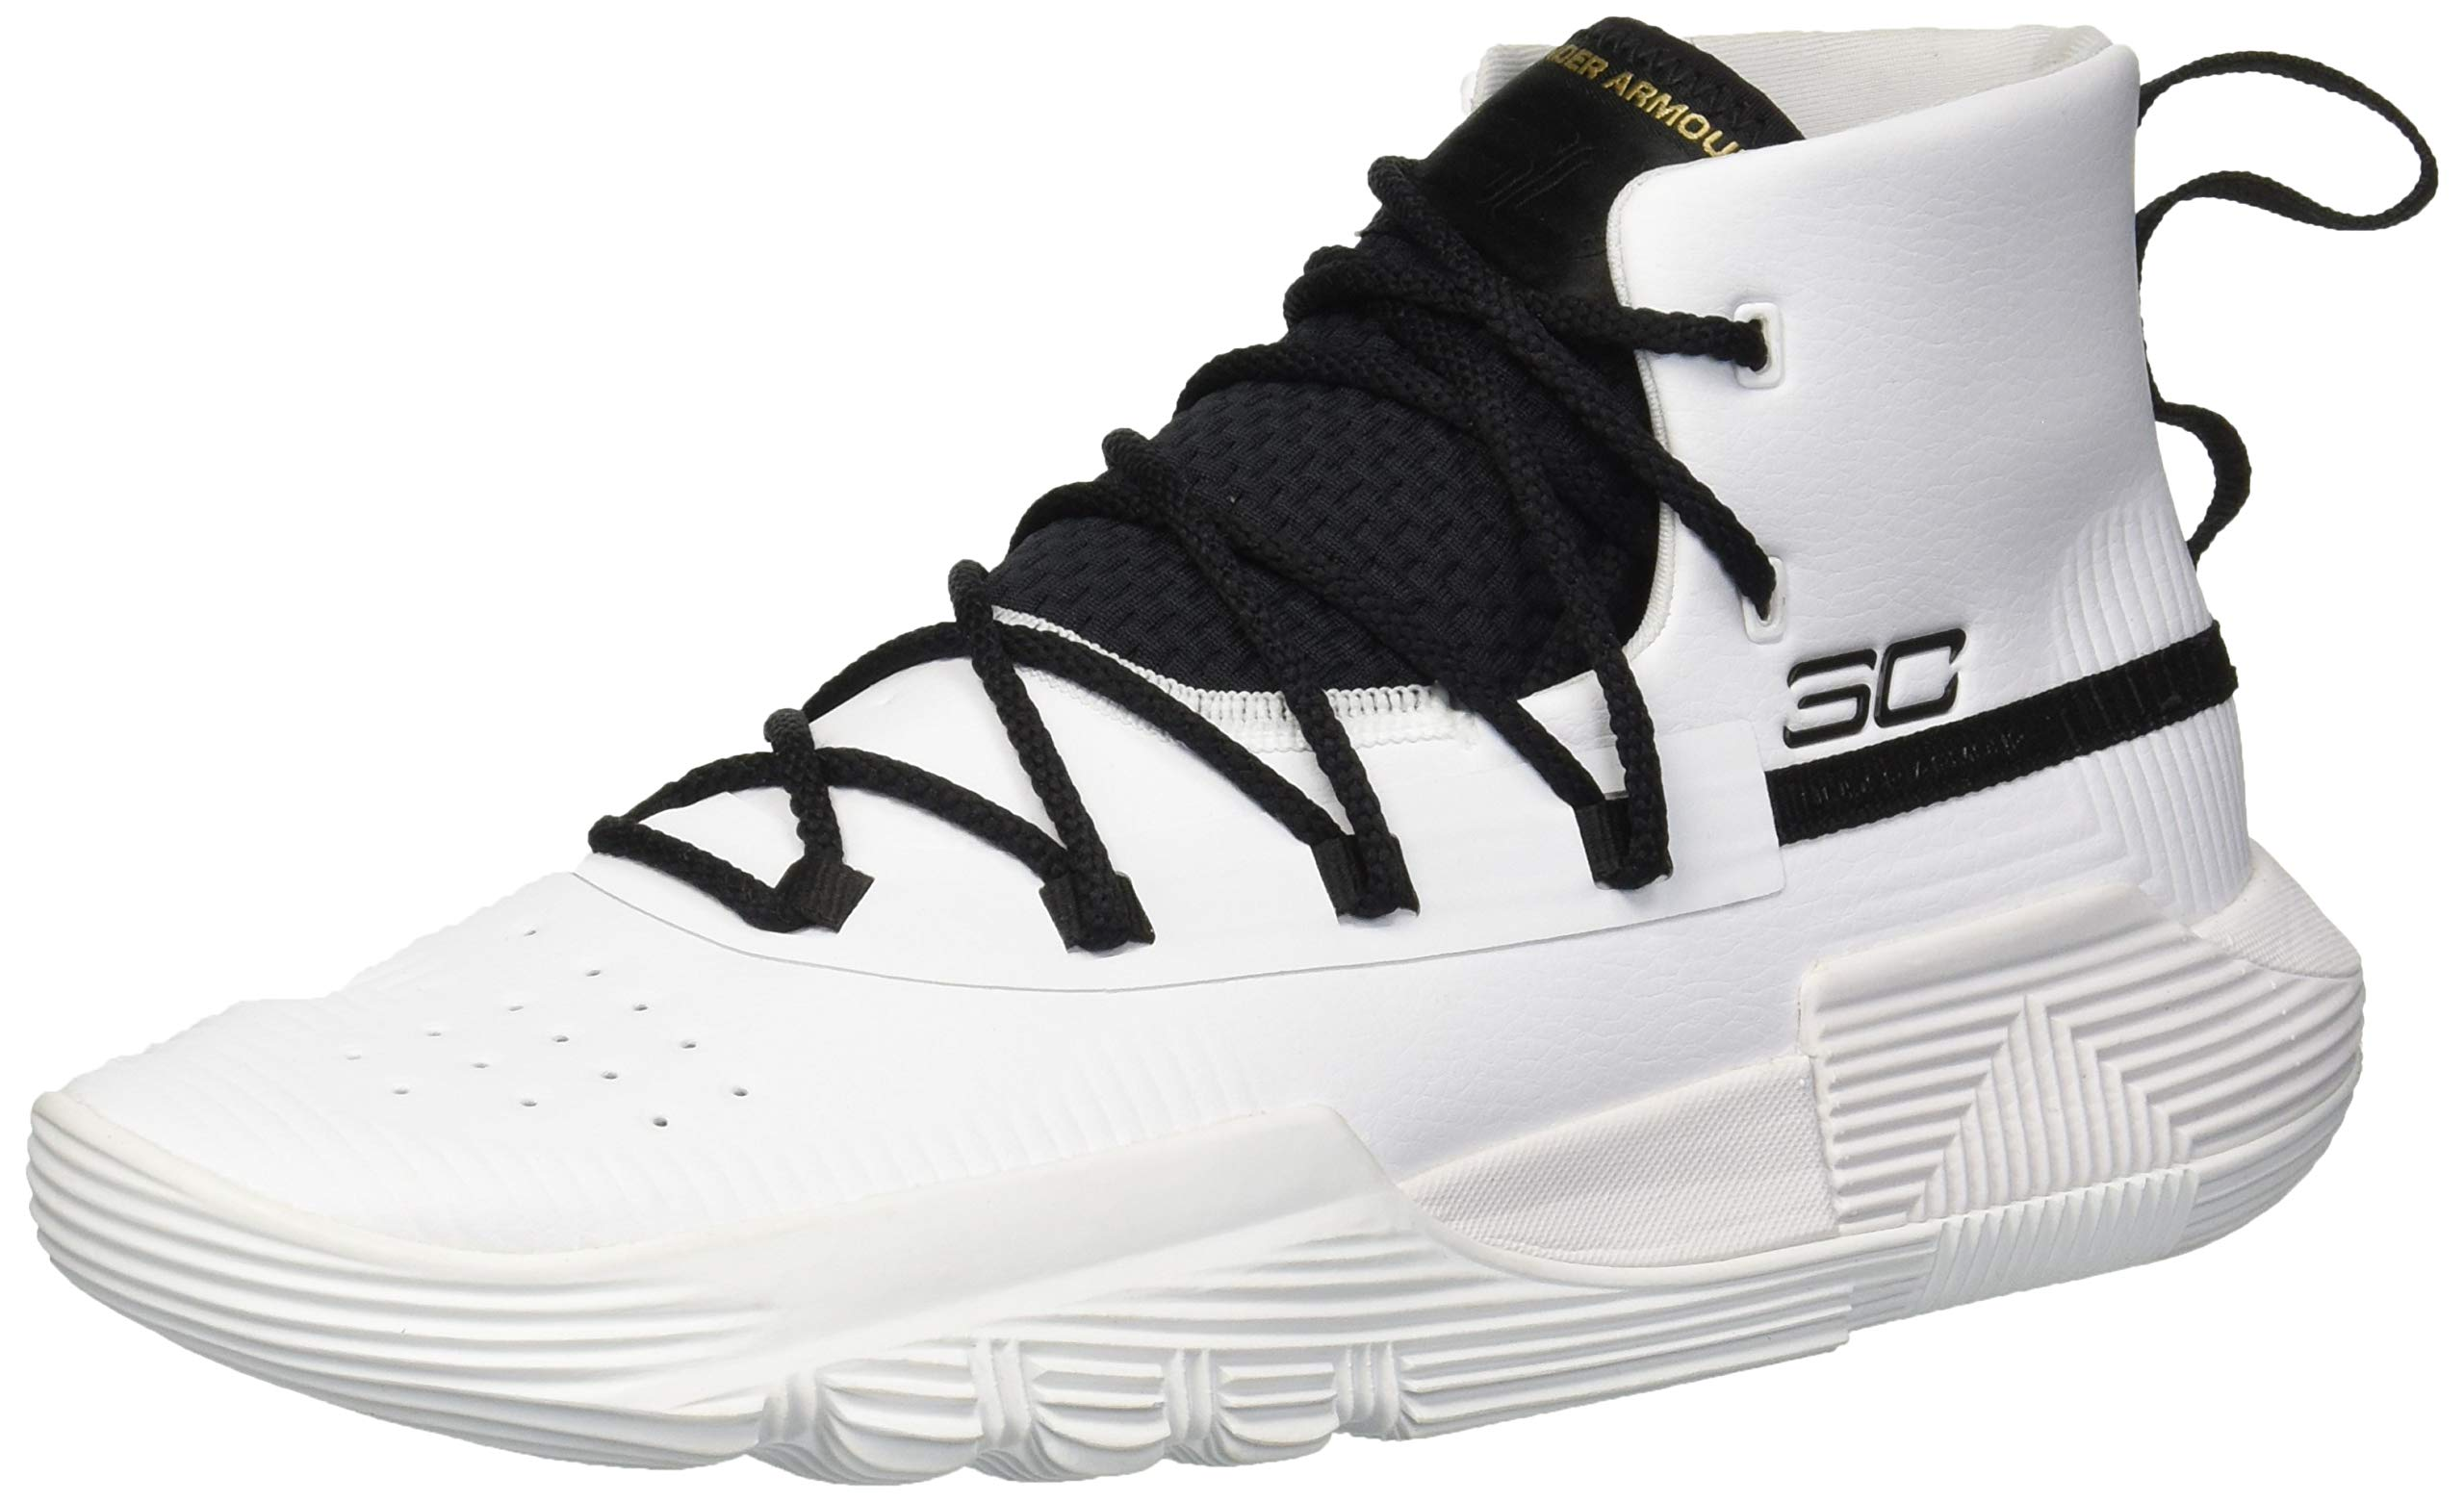 Under Armour Boys' Grade School SC 3Zer0 II Basketball Shoe White (100)/Black 7